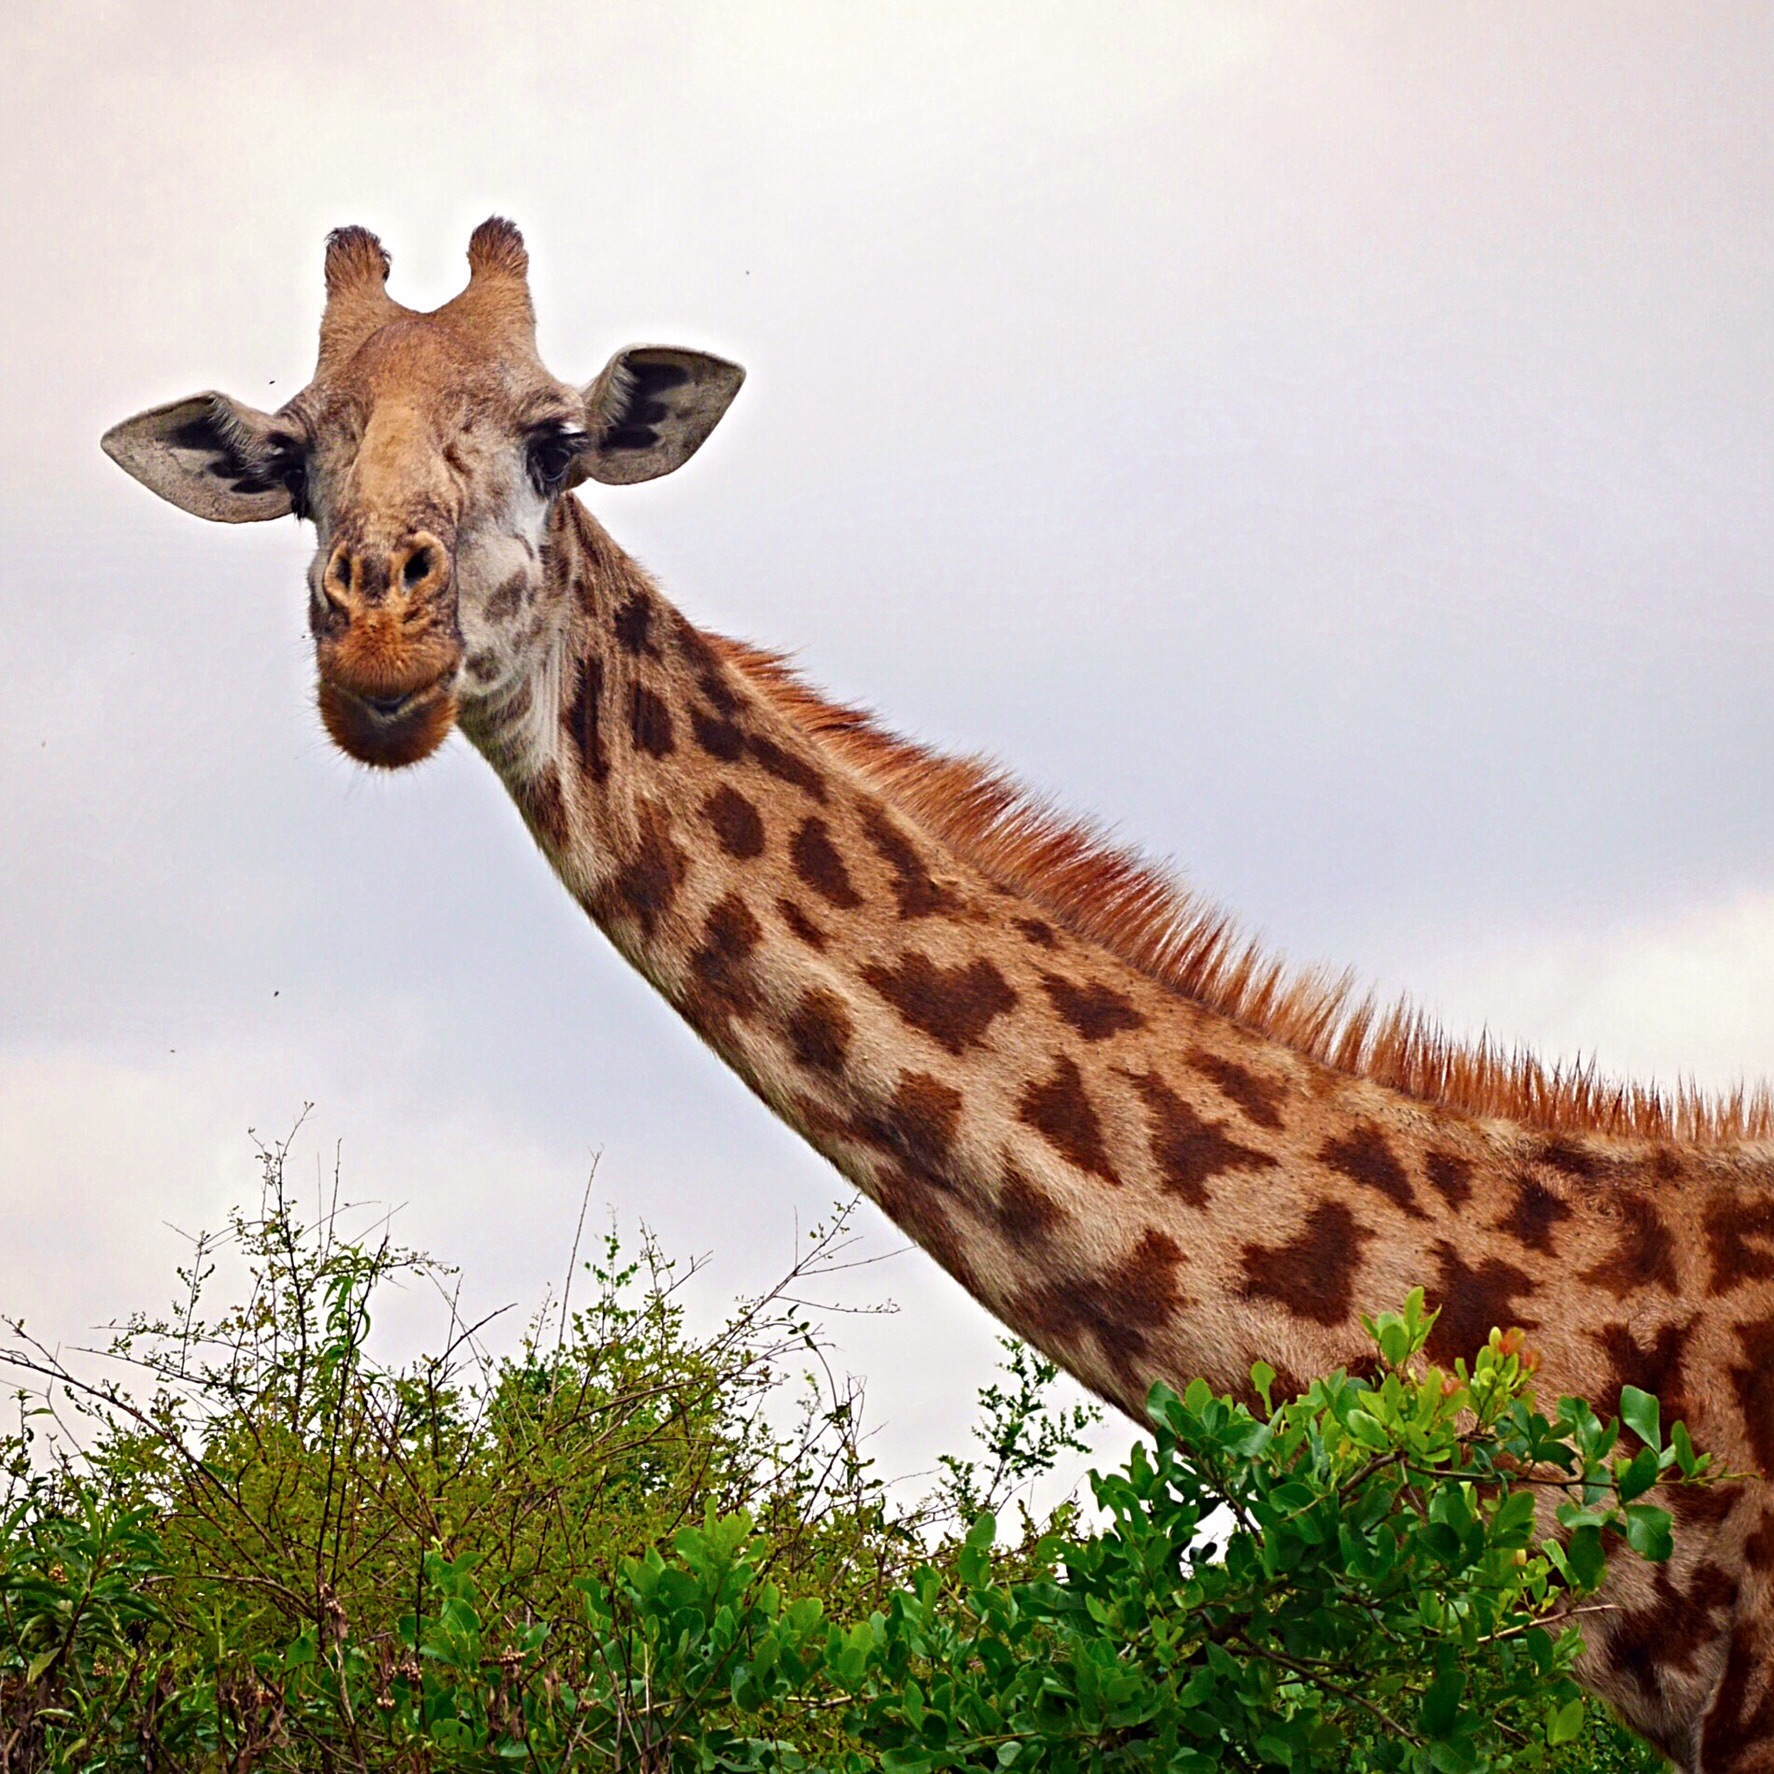 Giraffes at Nairobi National Park